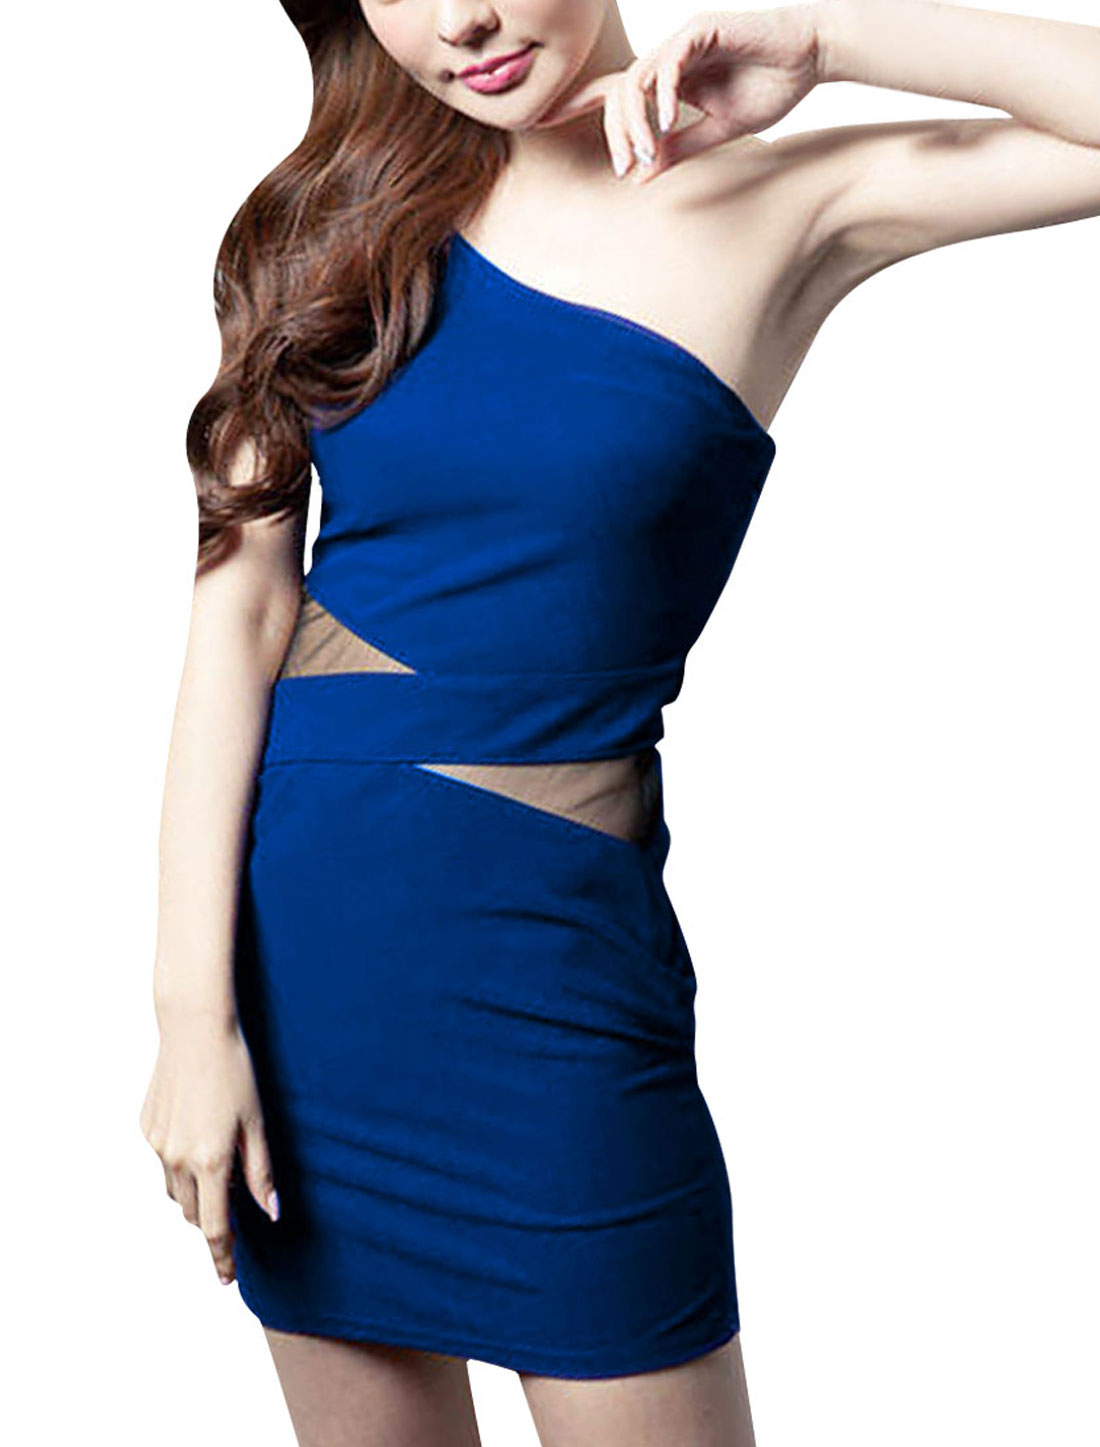 Woman New Style One Shoulder Design Mesh Royalblue Skinny Mini Dress XS